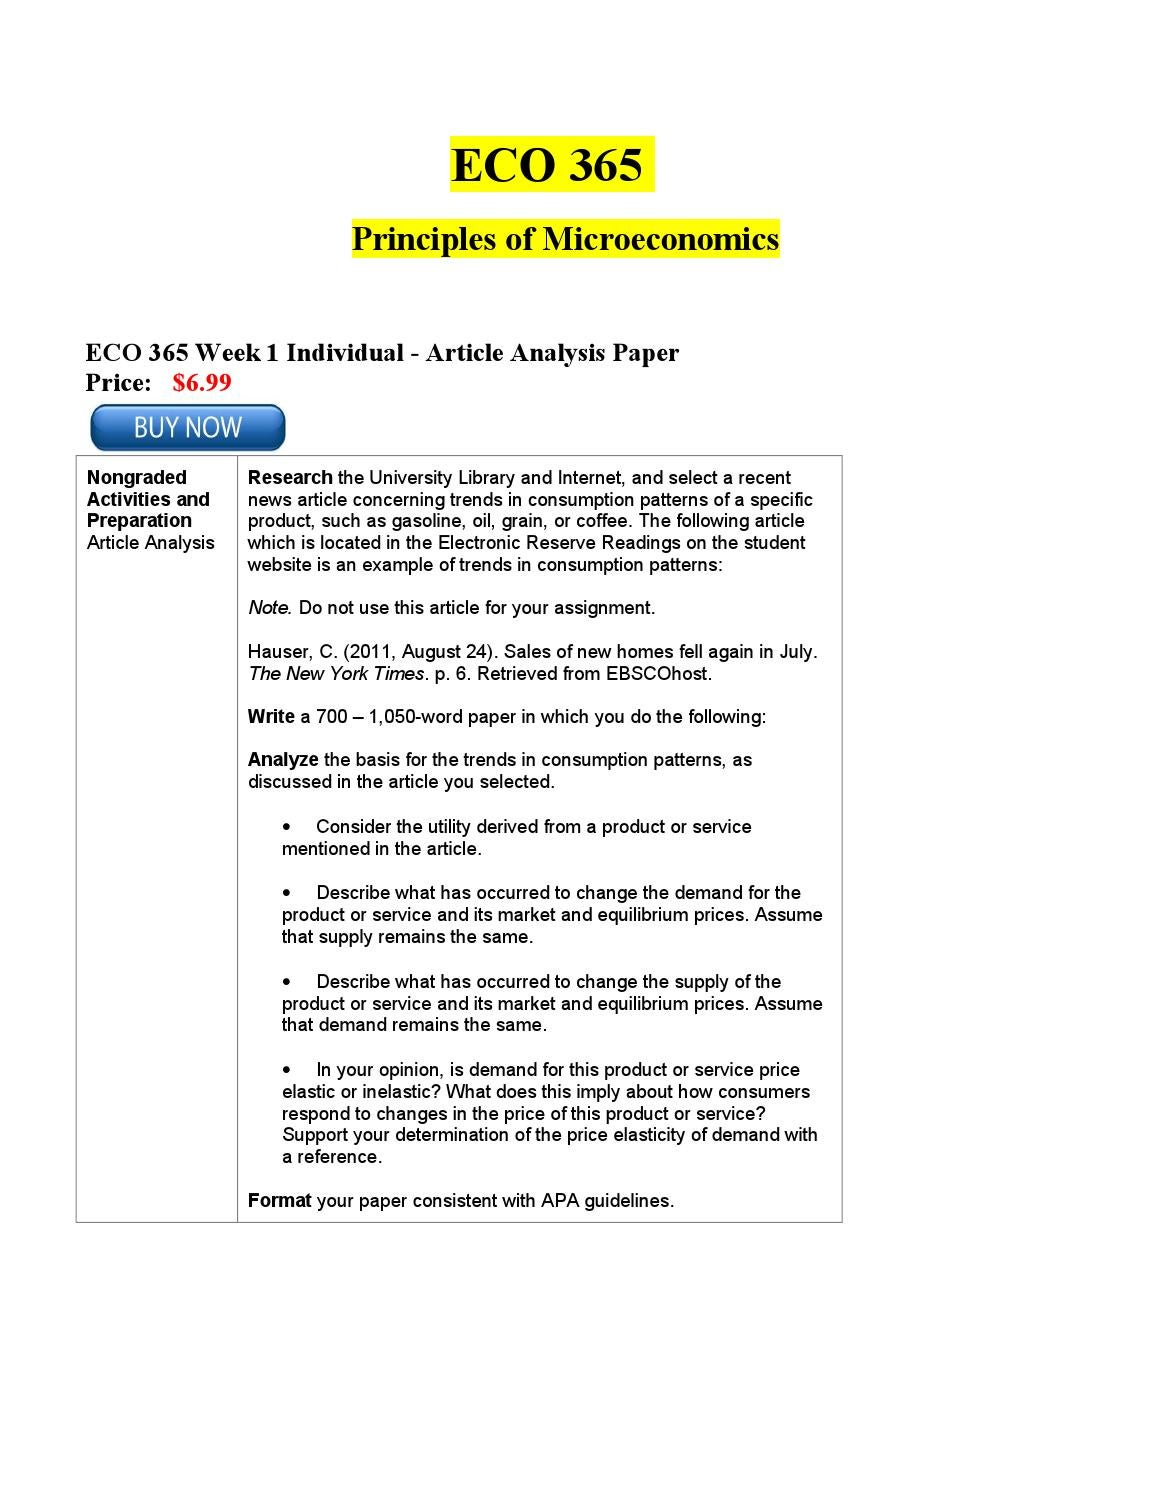 eco 365 article analysis paper Eco 365 principles of microeconomics eco 365 week 1 individual assignment: article analysis, trends in consumption pattern discussion questions 1, 2 and 3 eco 365 week 2 individual.